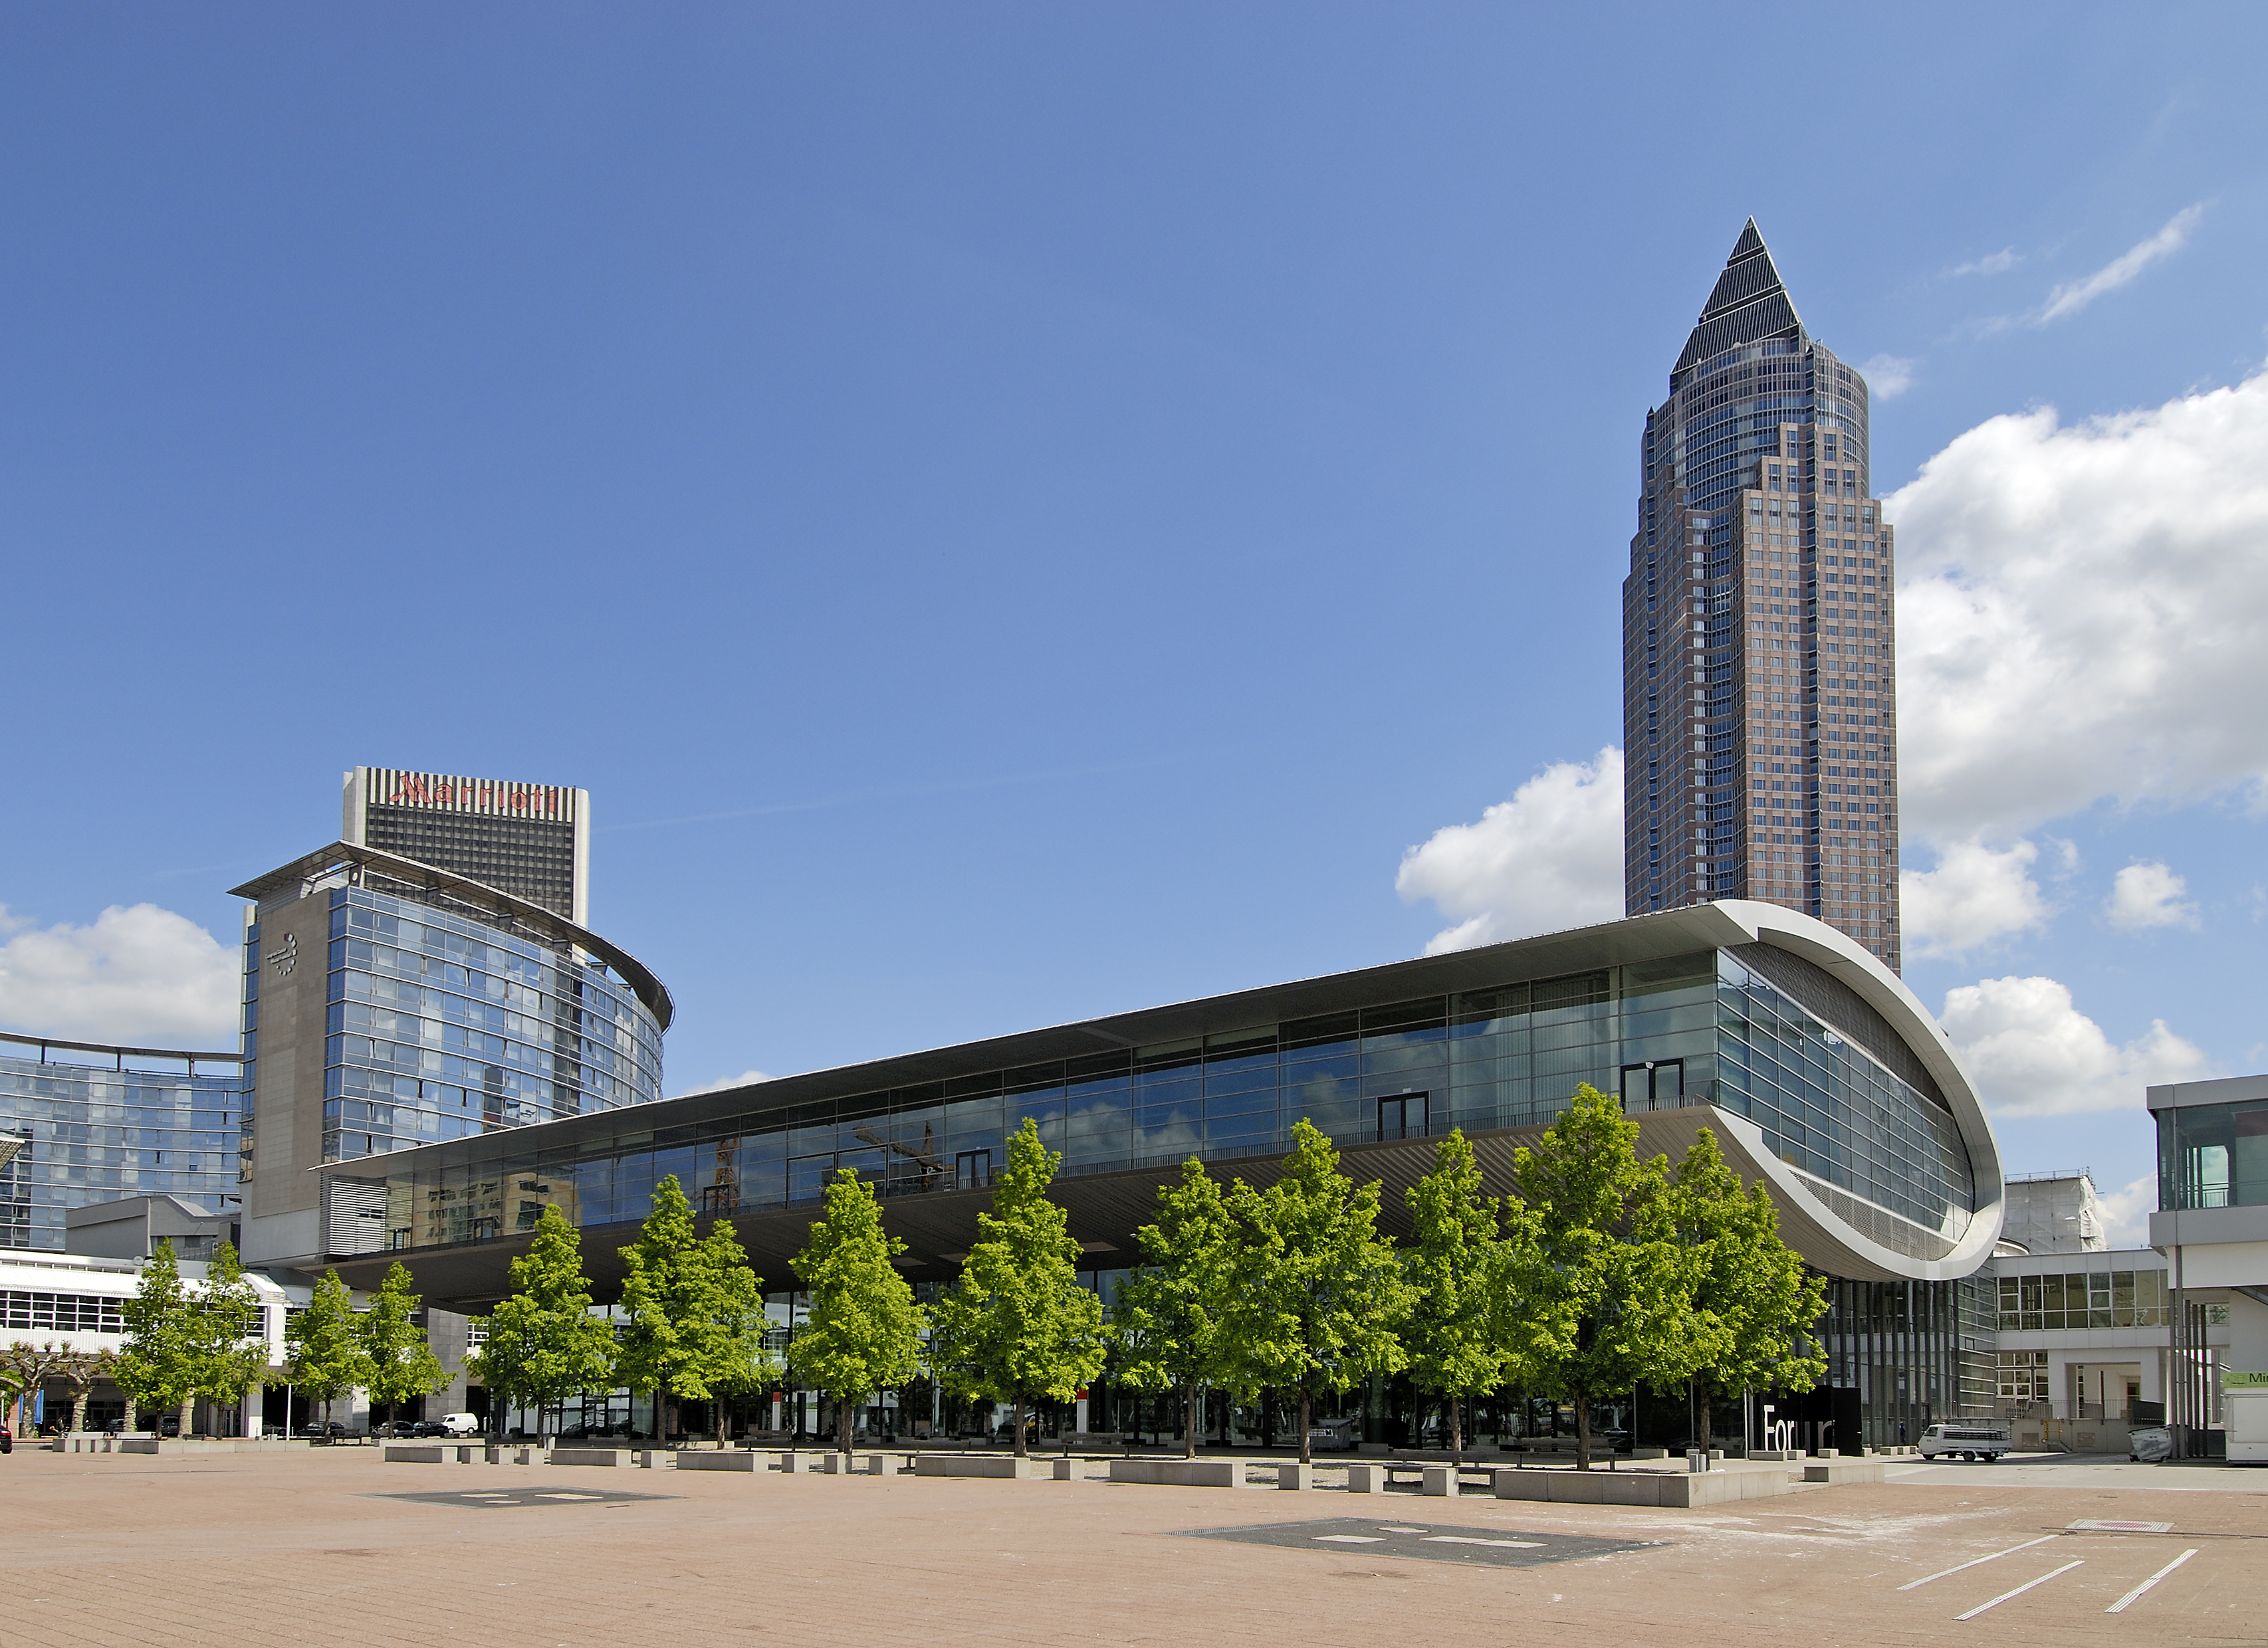 Forum.1 on the Frankfurt Fair and Exhibition Centre: venue for the E2 Forum Frankfurt 2018